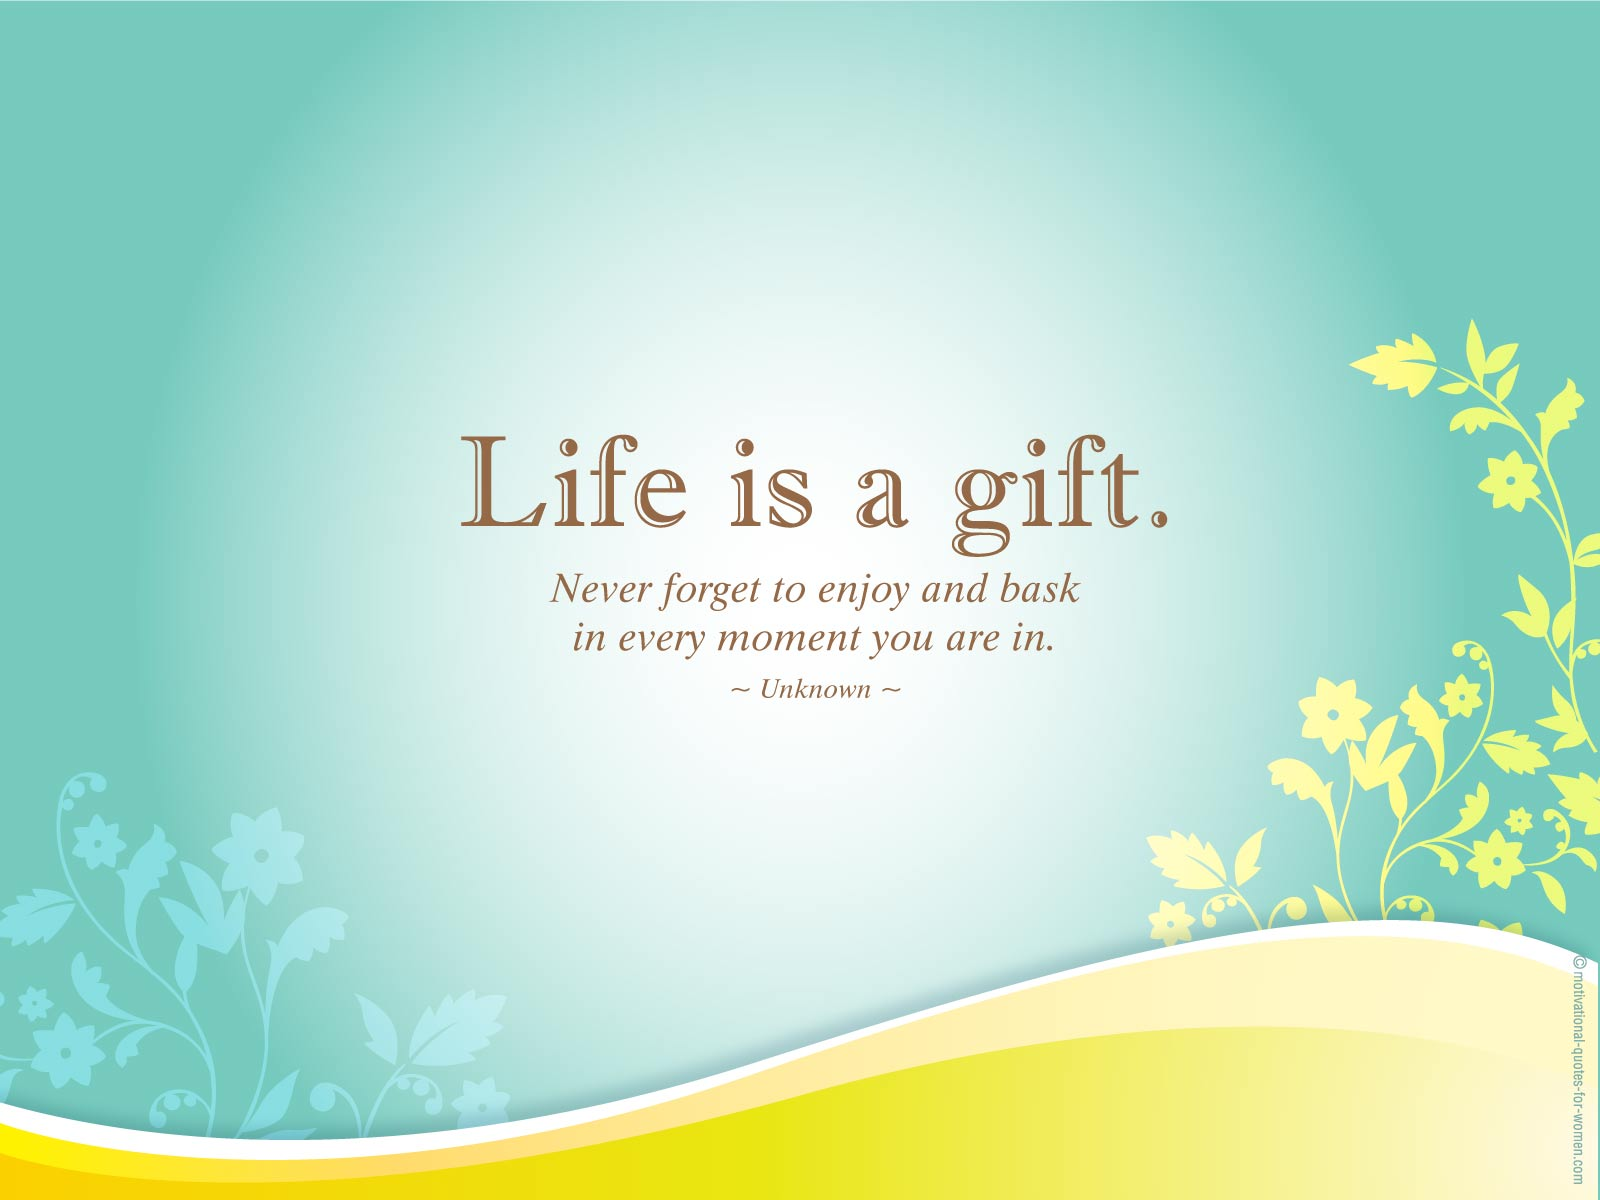 Life Is a Gift, Never Forget To Enjoy And Bask In Every Moment You Are In